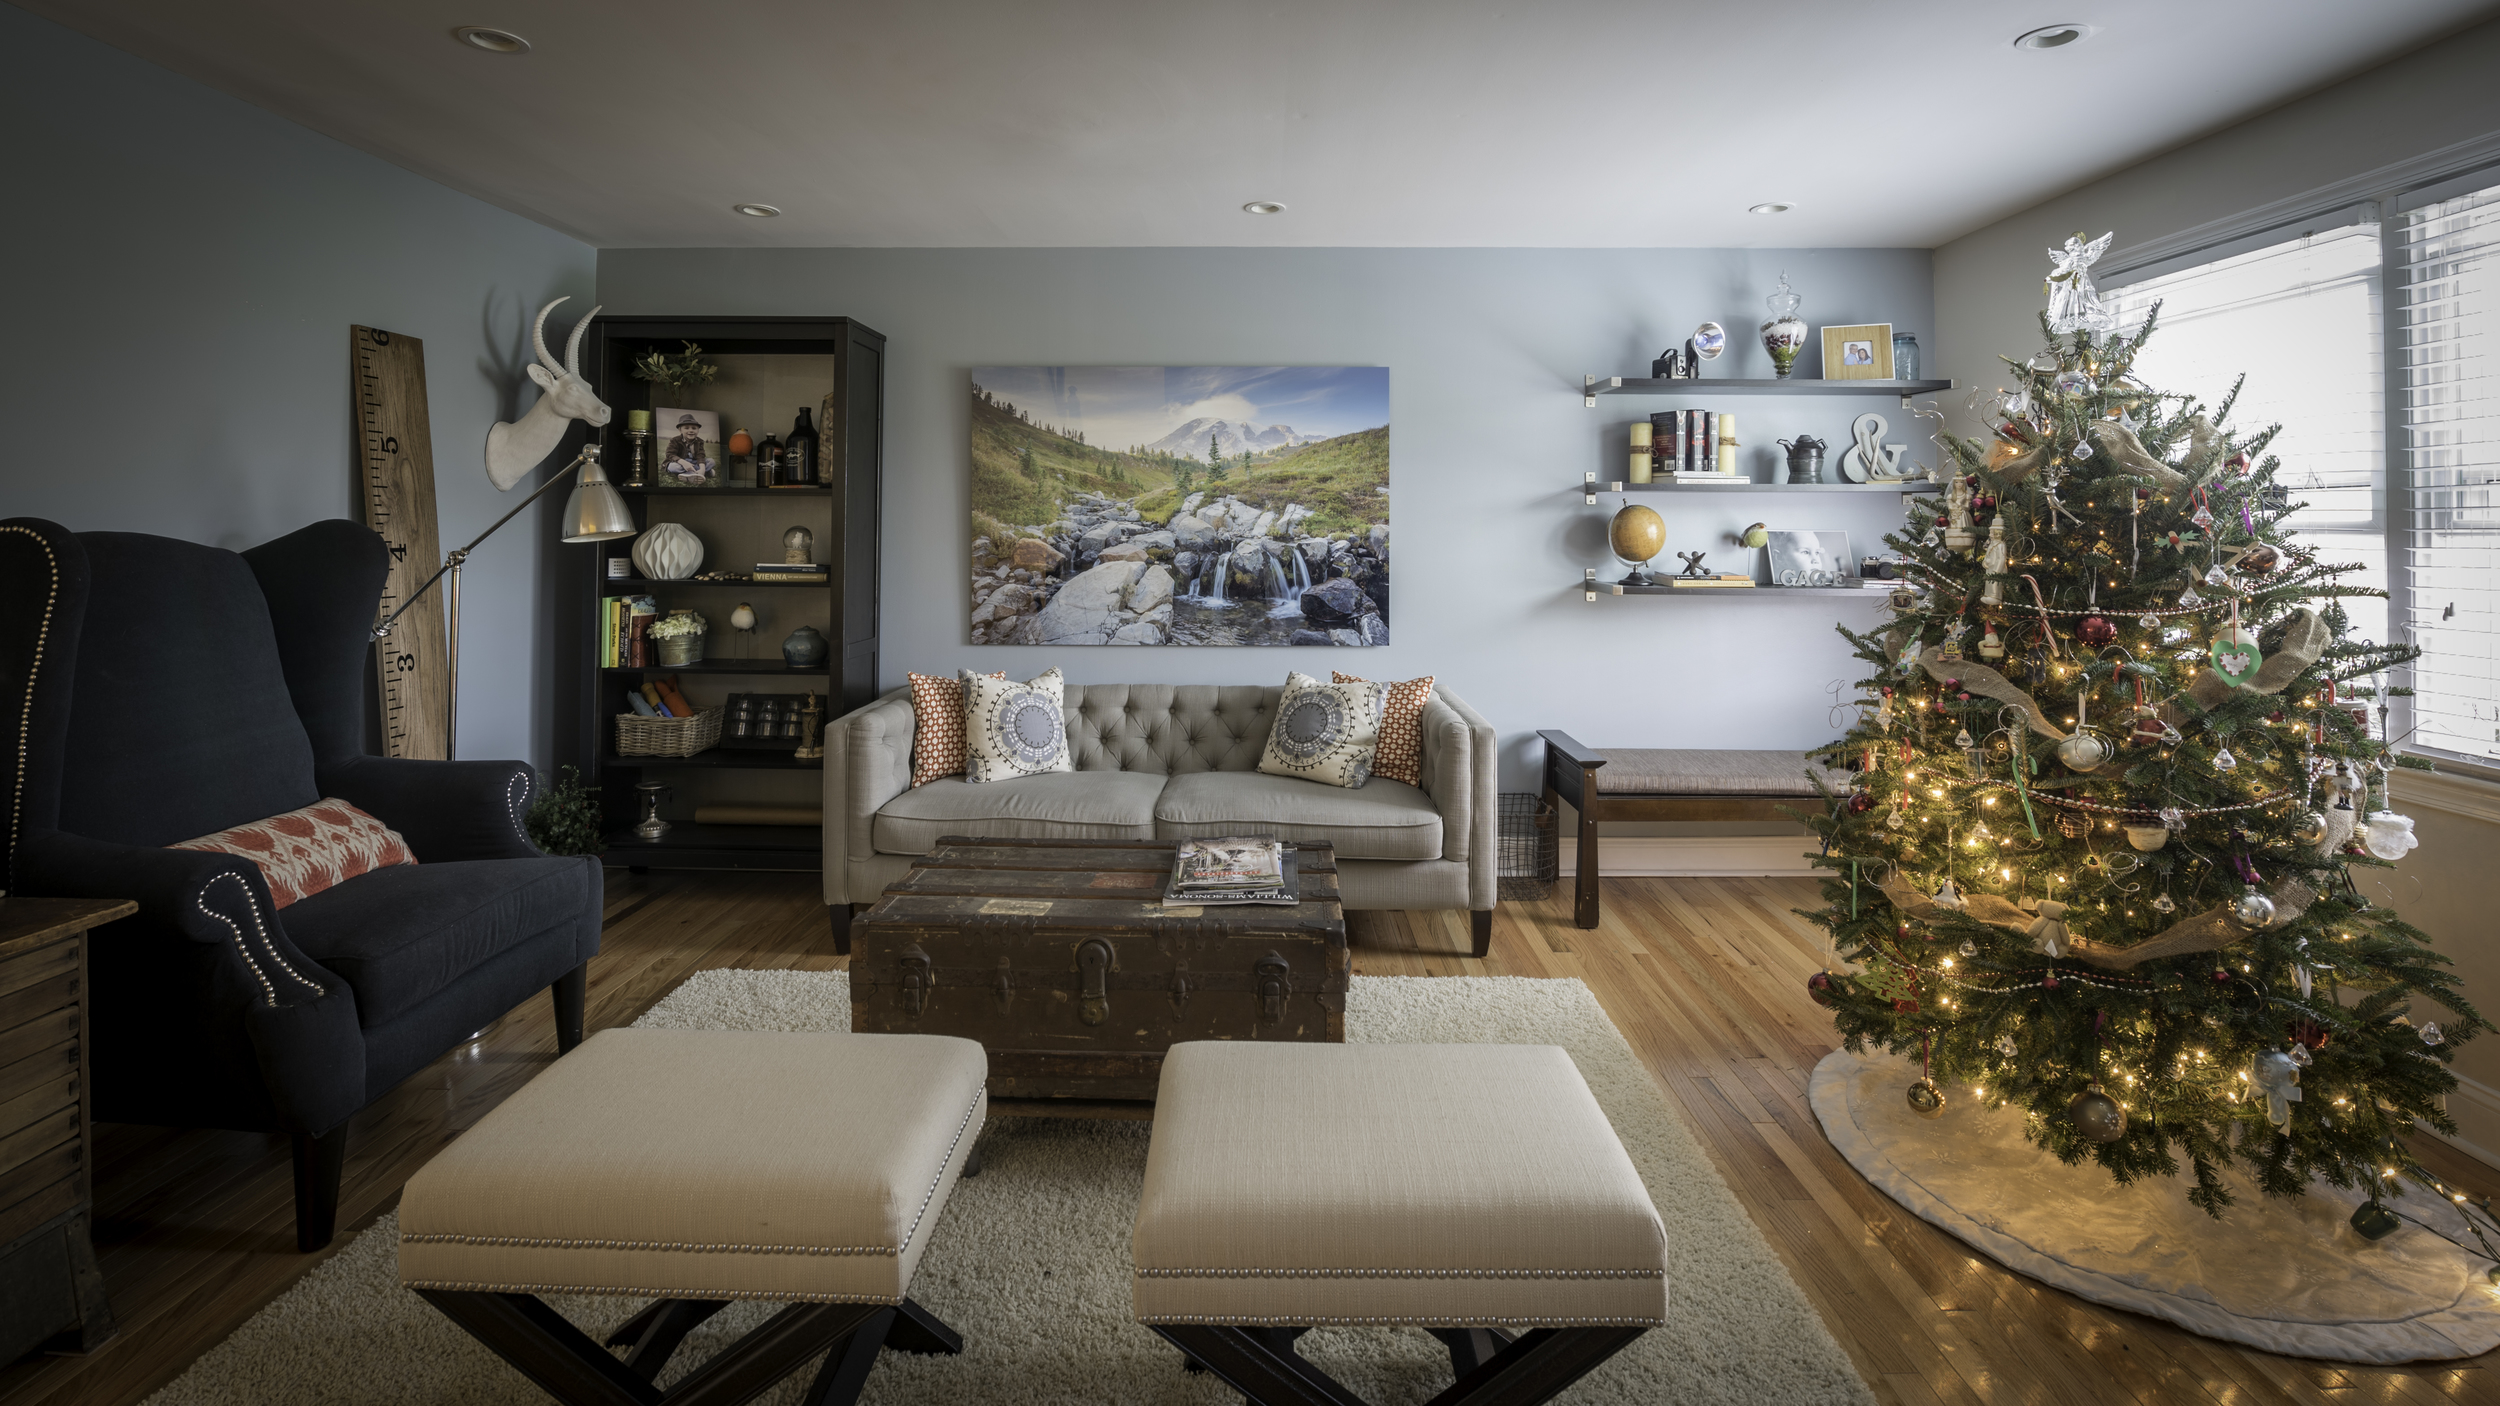 Living Room made up for Christmas